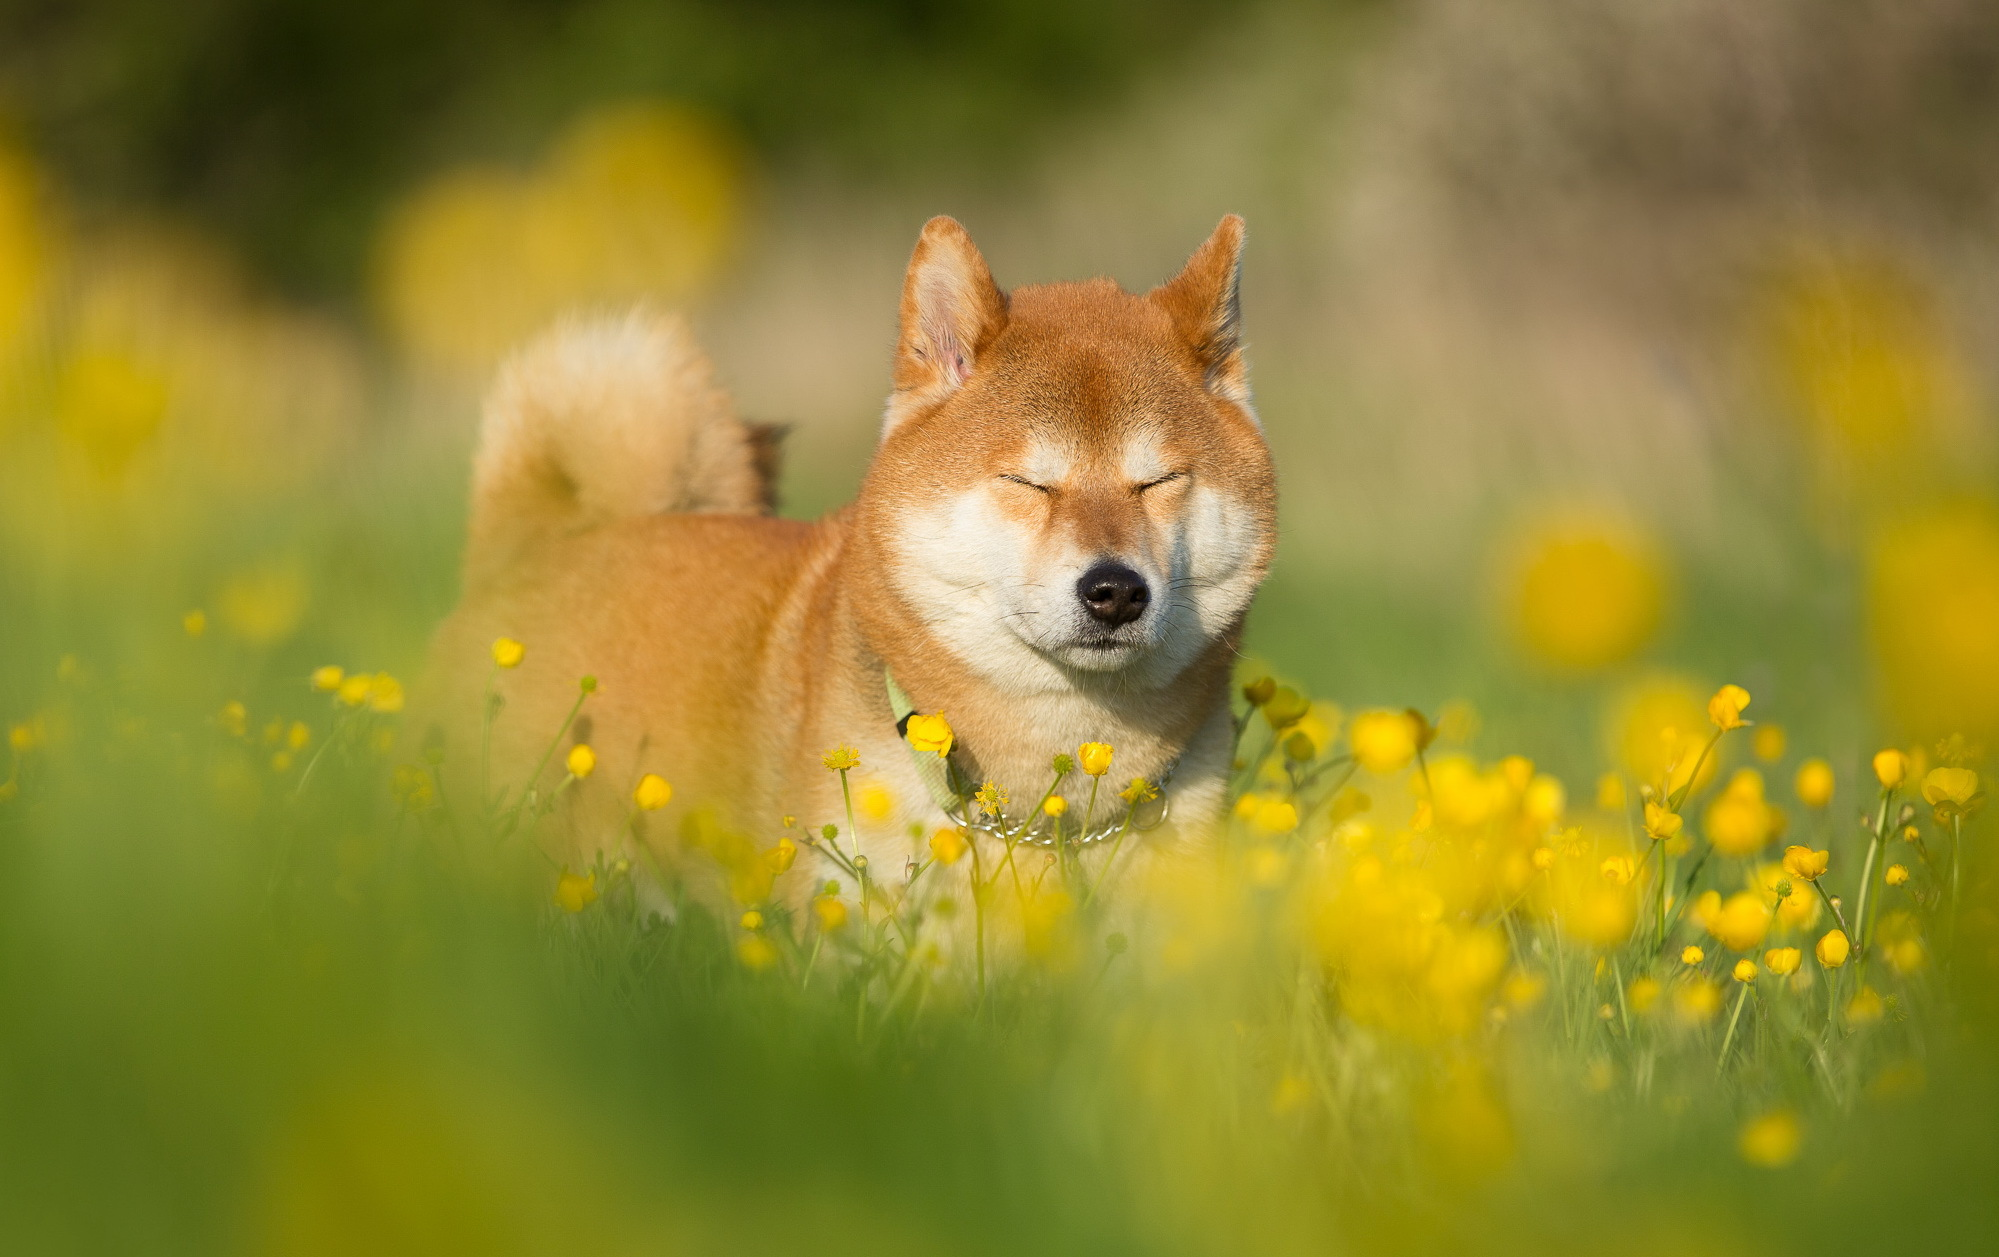 Shiba Inu Computer Wallpapers, Desktop Backgrounds | 1999x1257 | ID ...